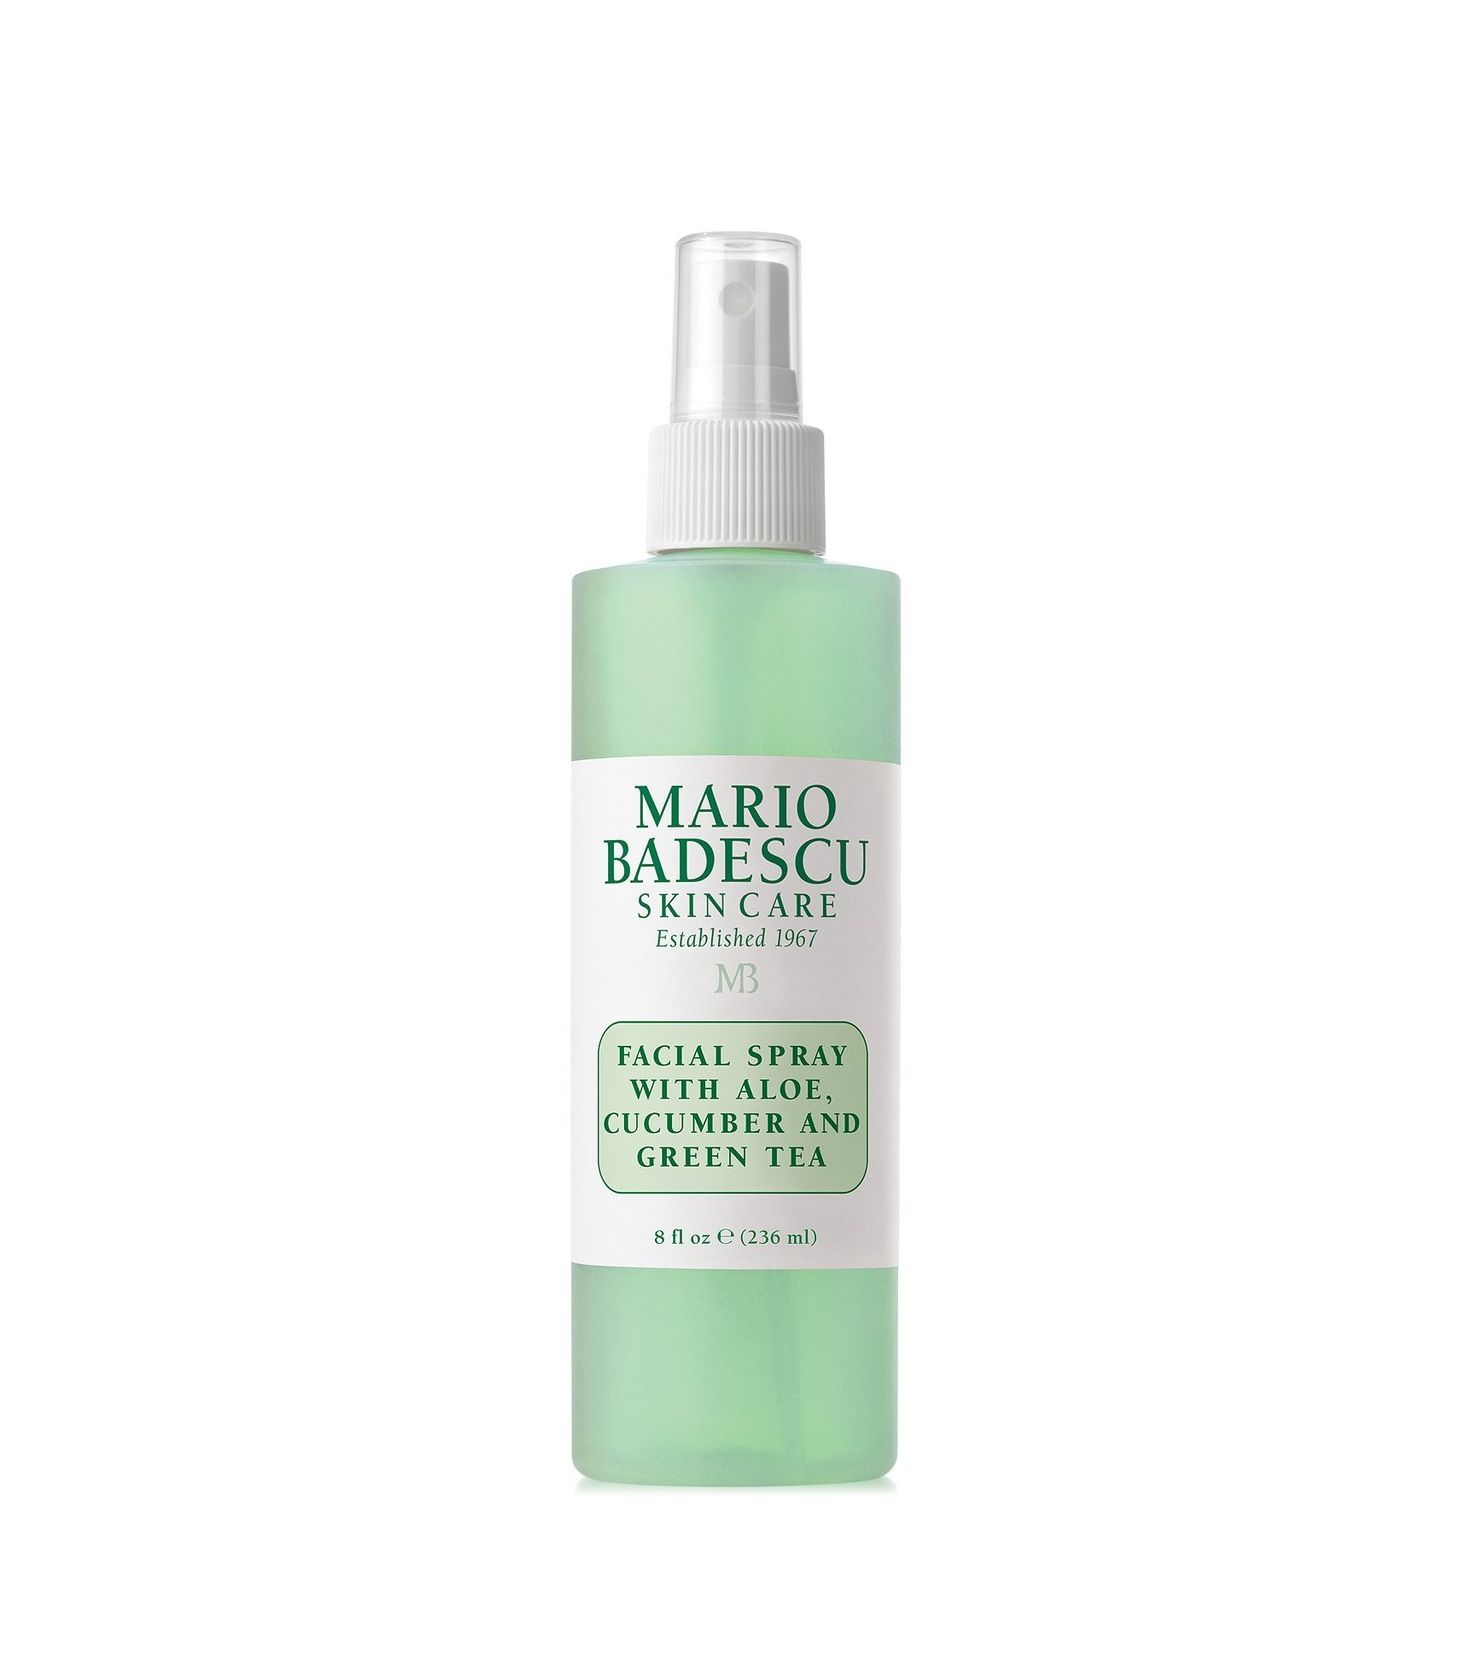 Facial Spray With Aloe Cucumber e Green Tea MARIO BADESCU